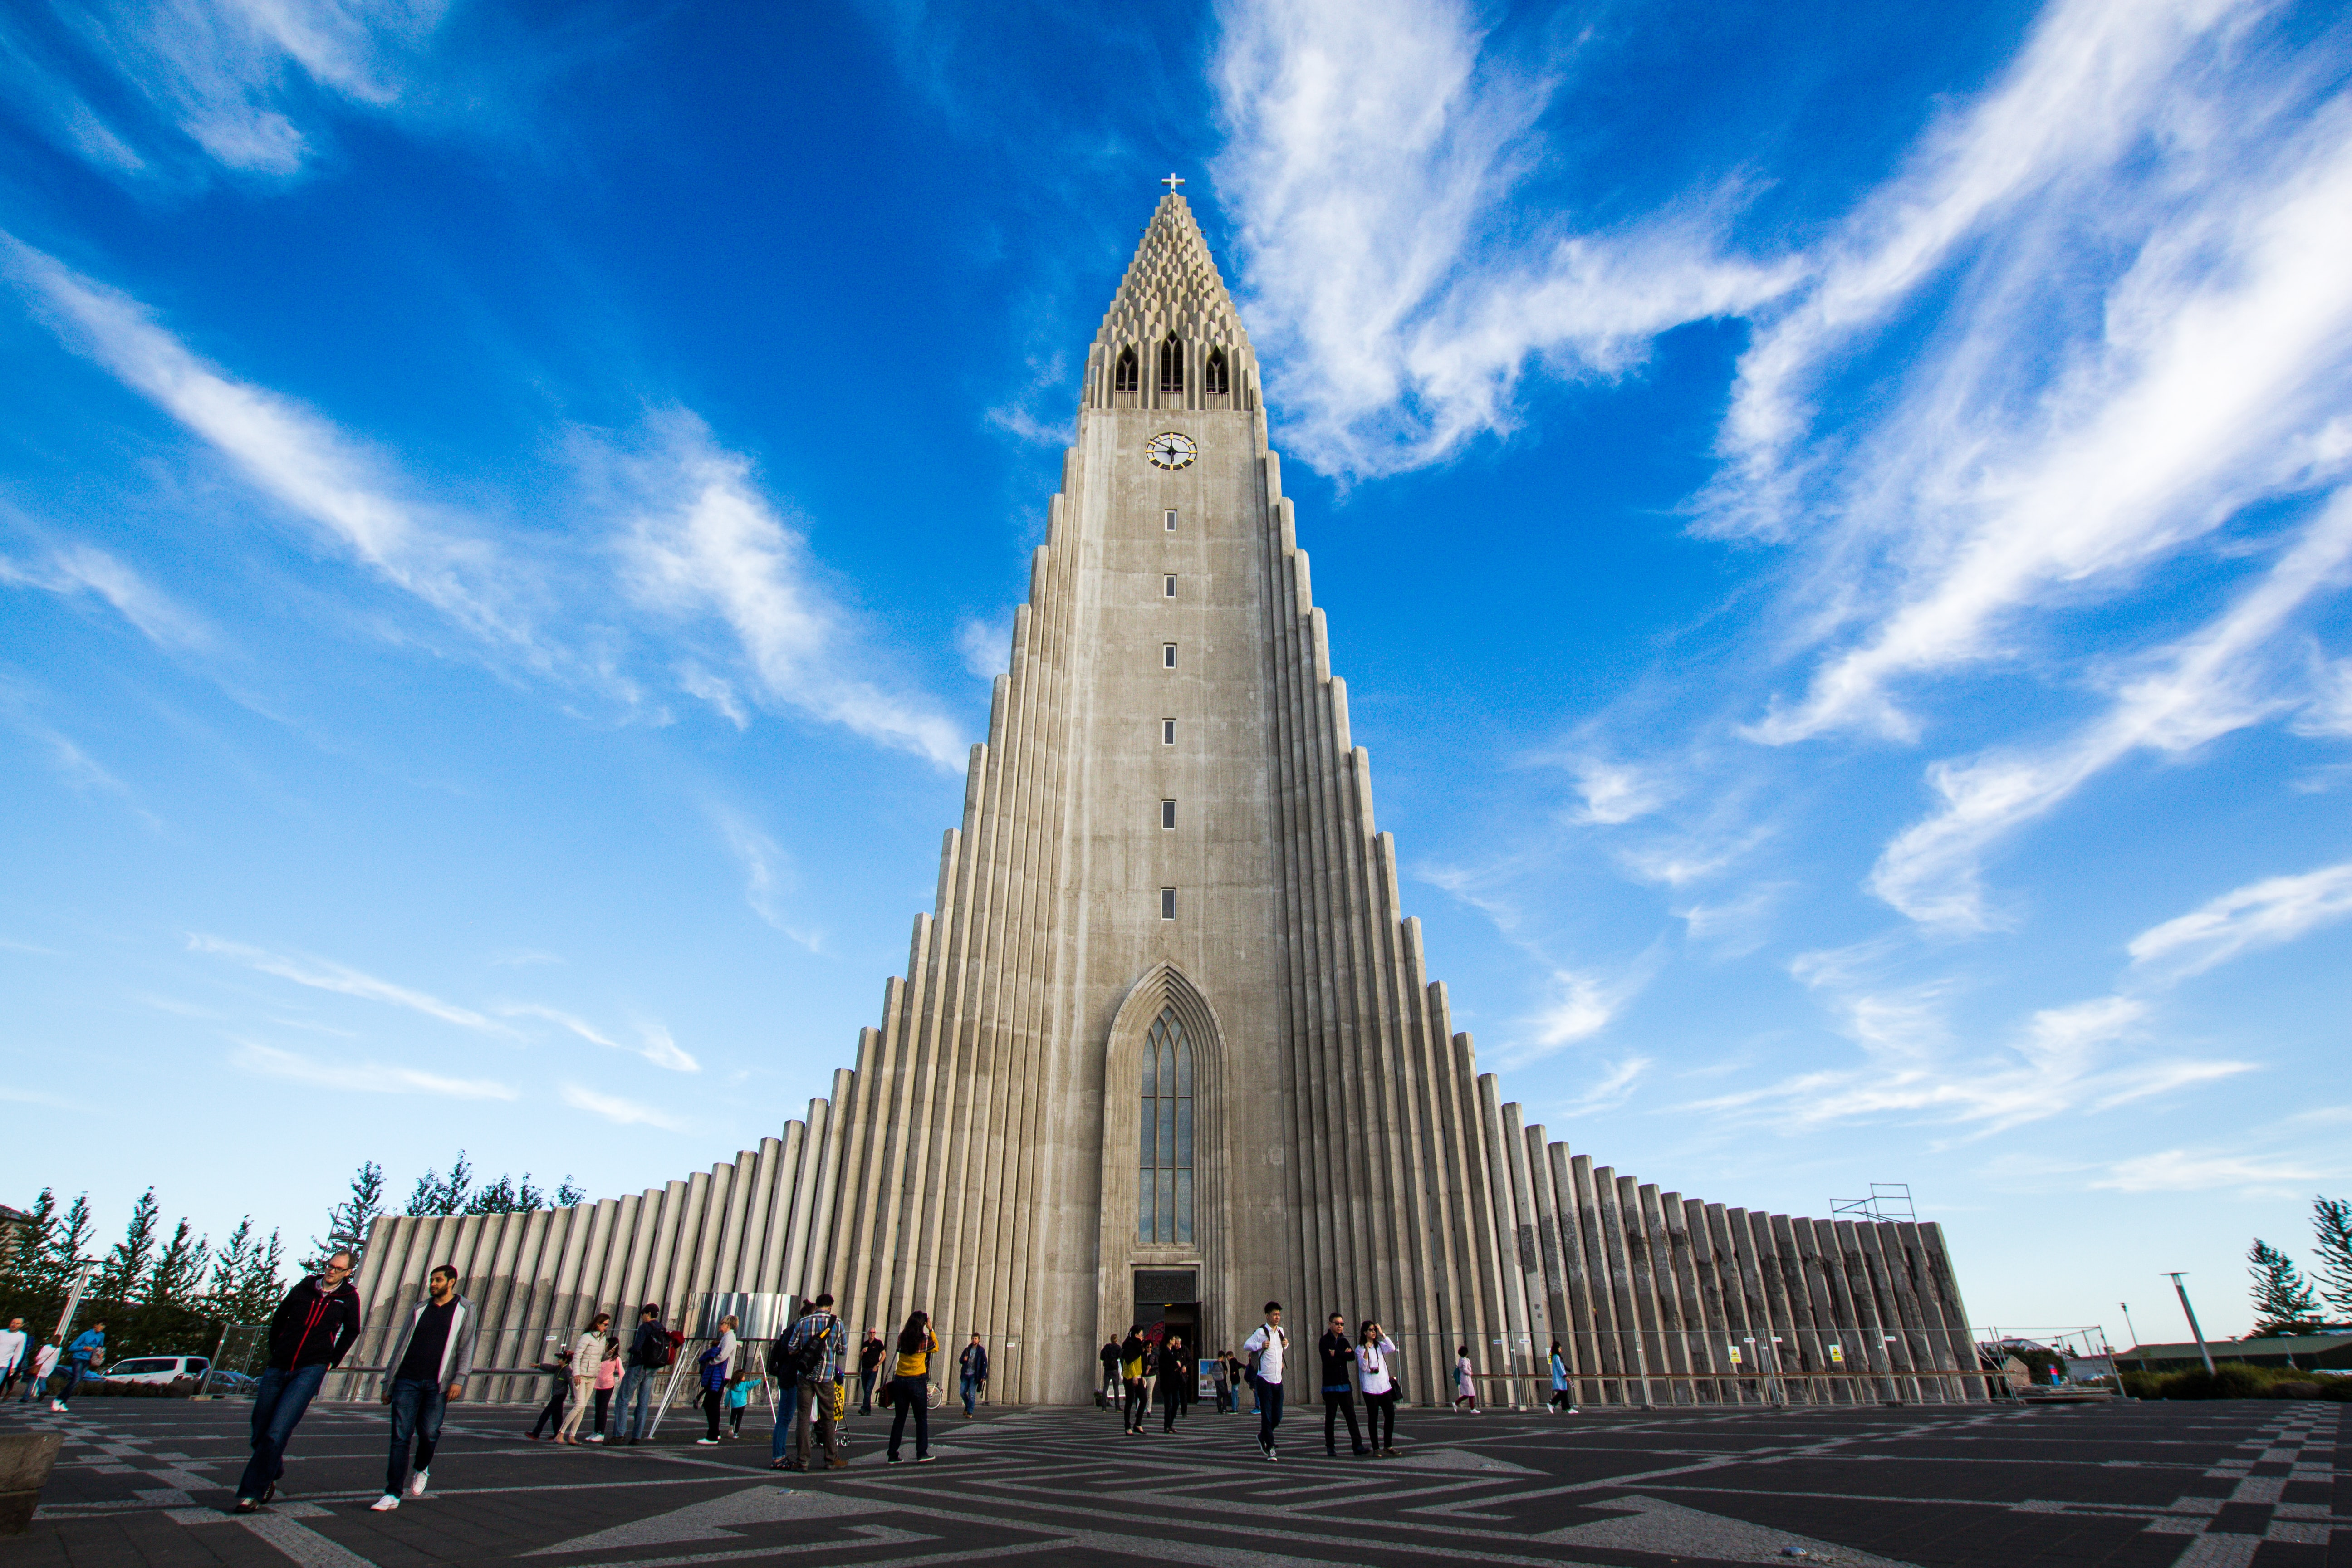 A group of people is standing in front of the Hallgrimskirkja Church.